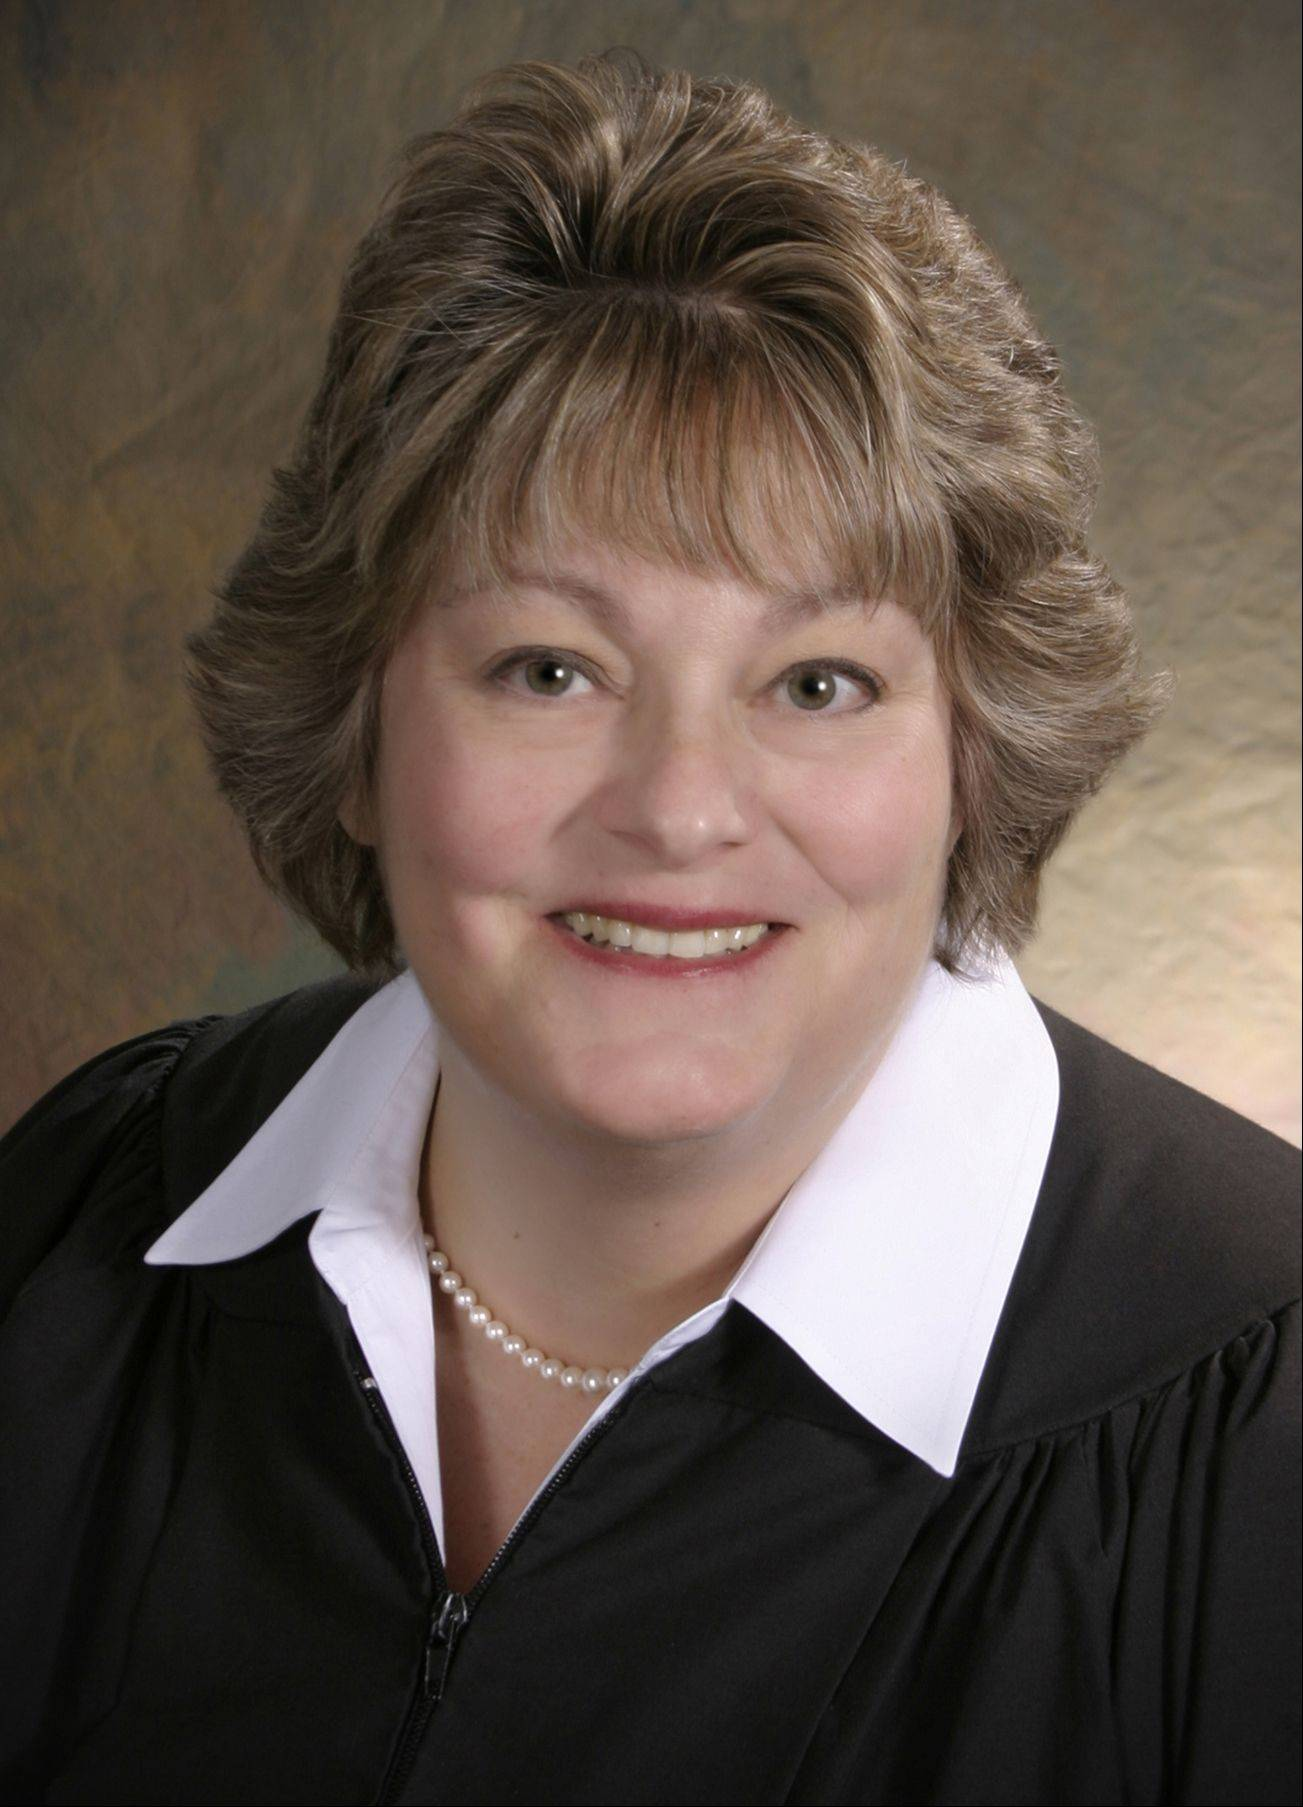 Kane County Chief Judge Judy Brawka